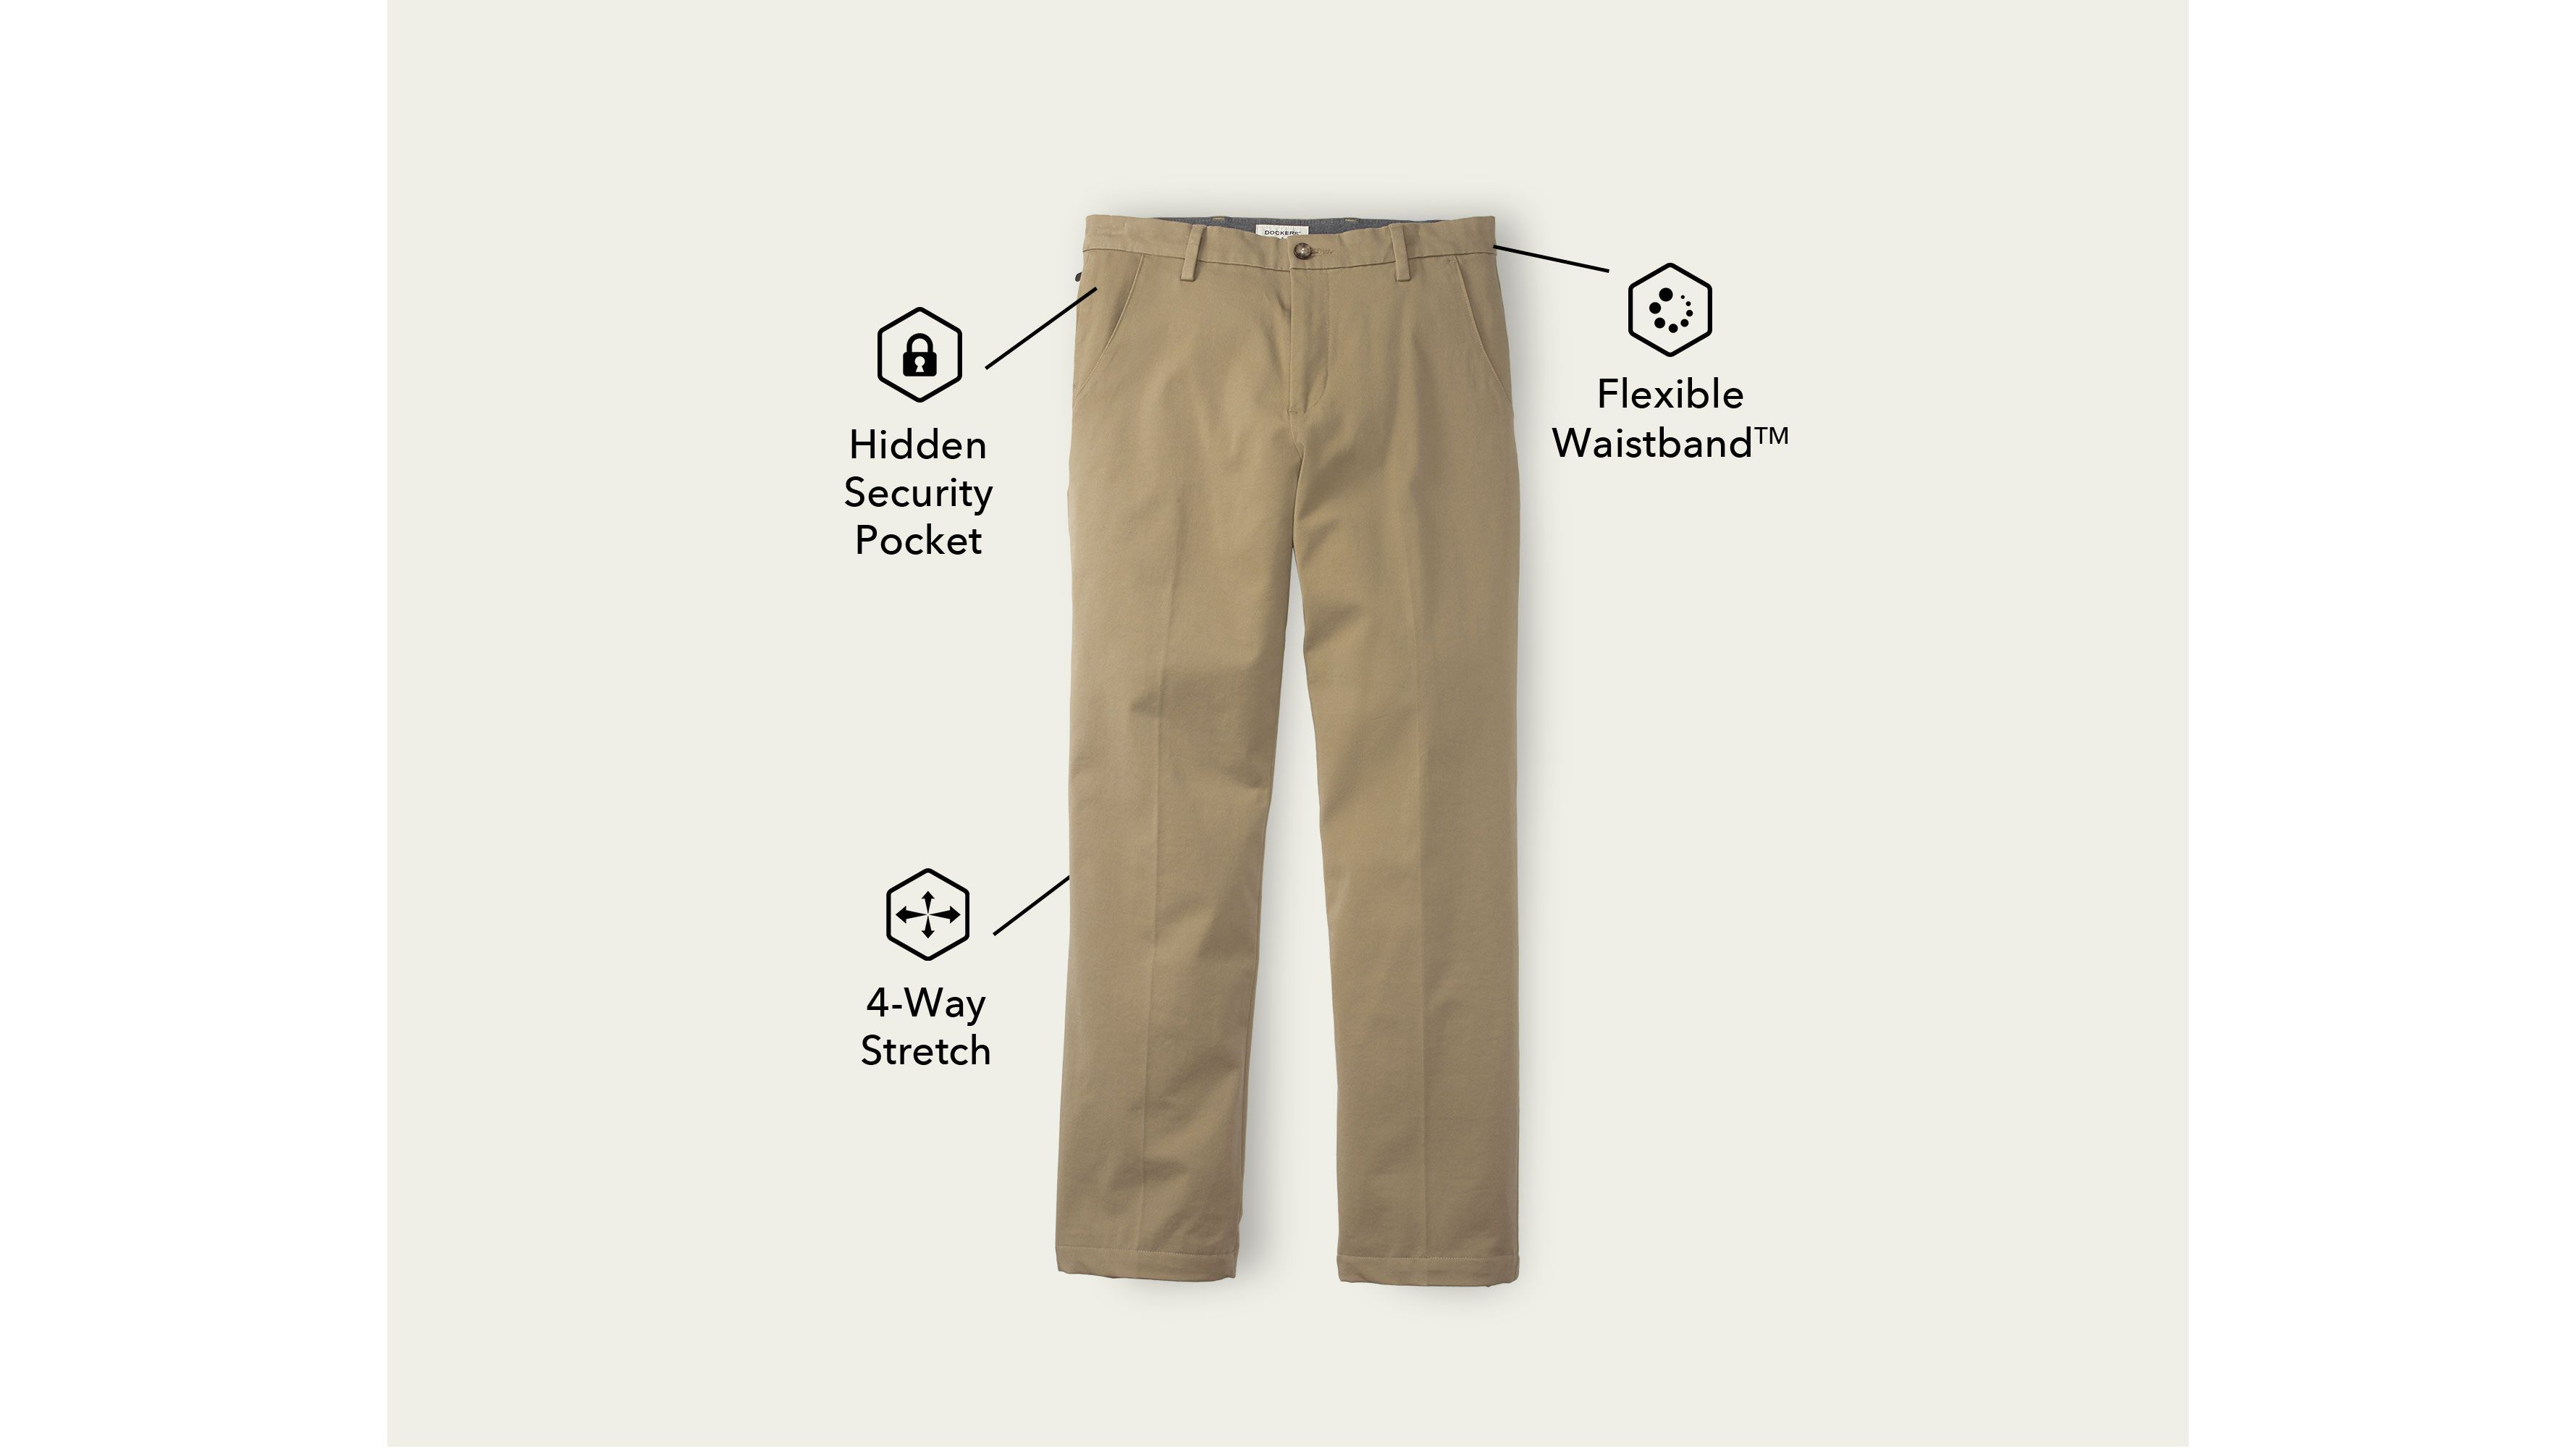 Men's Workday Khaki Pants, Straight Fit Tan 398980001